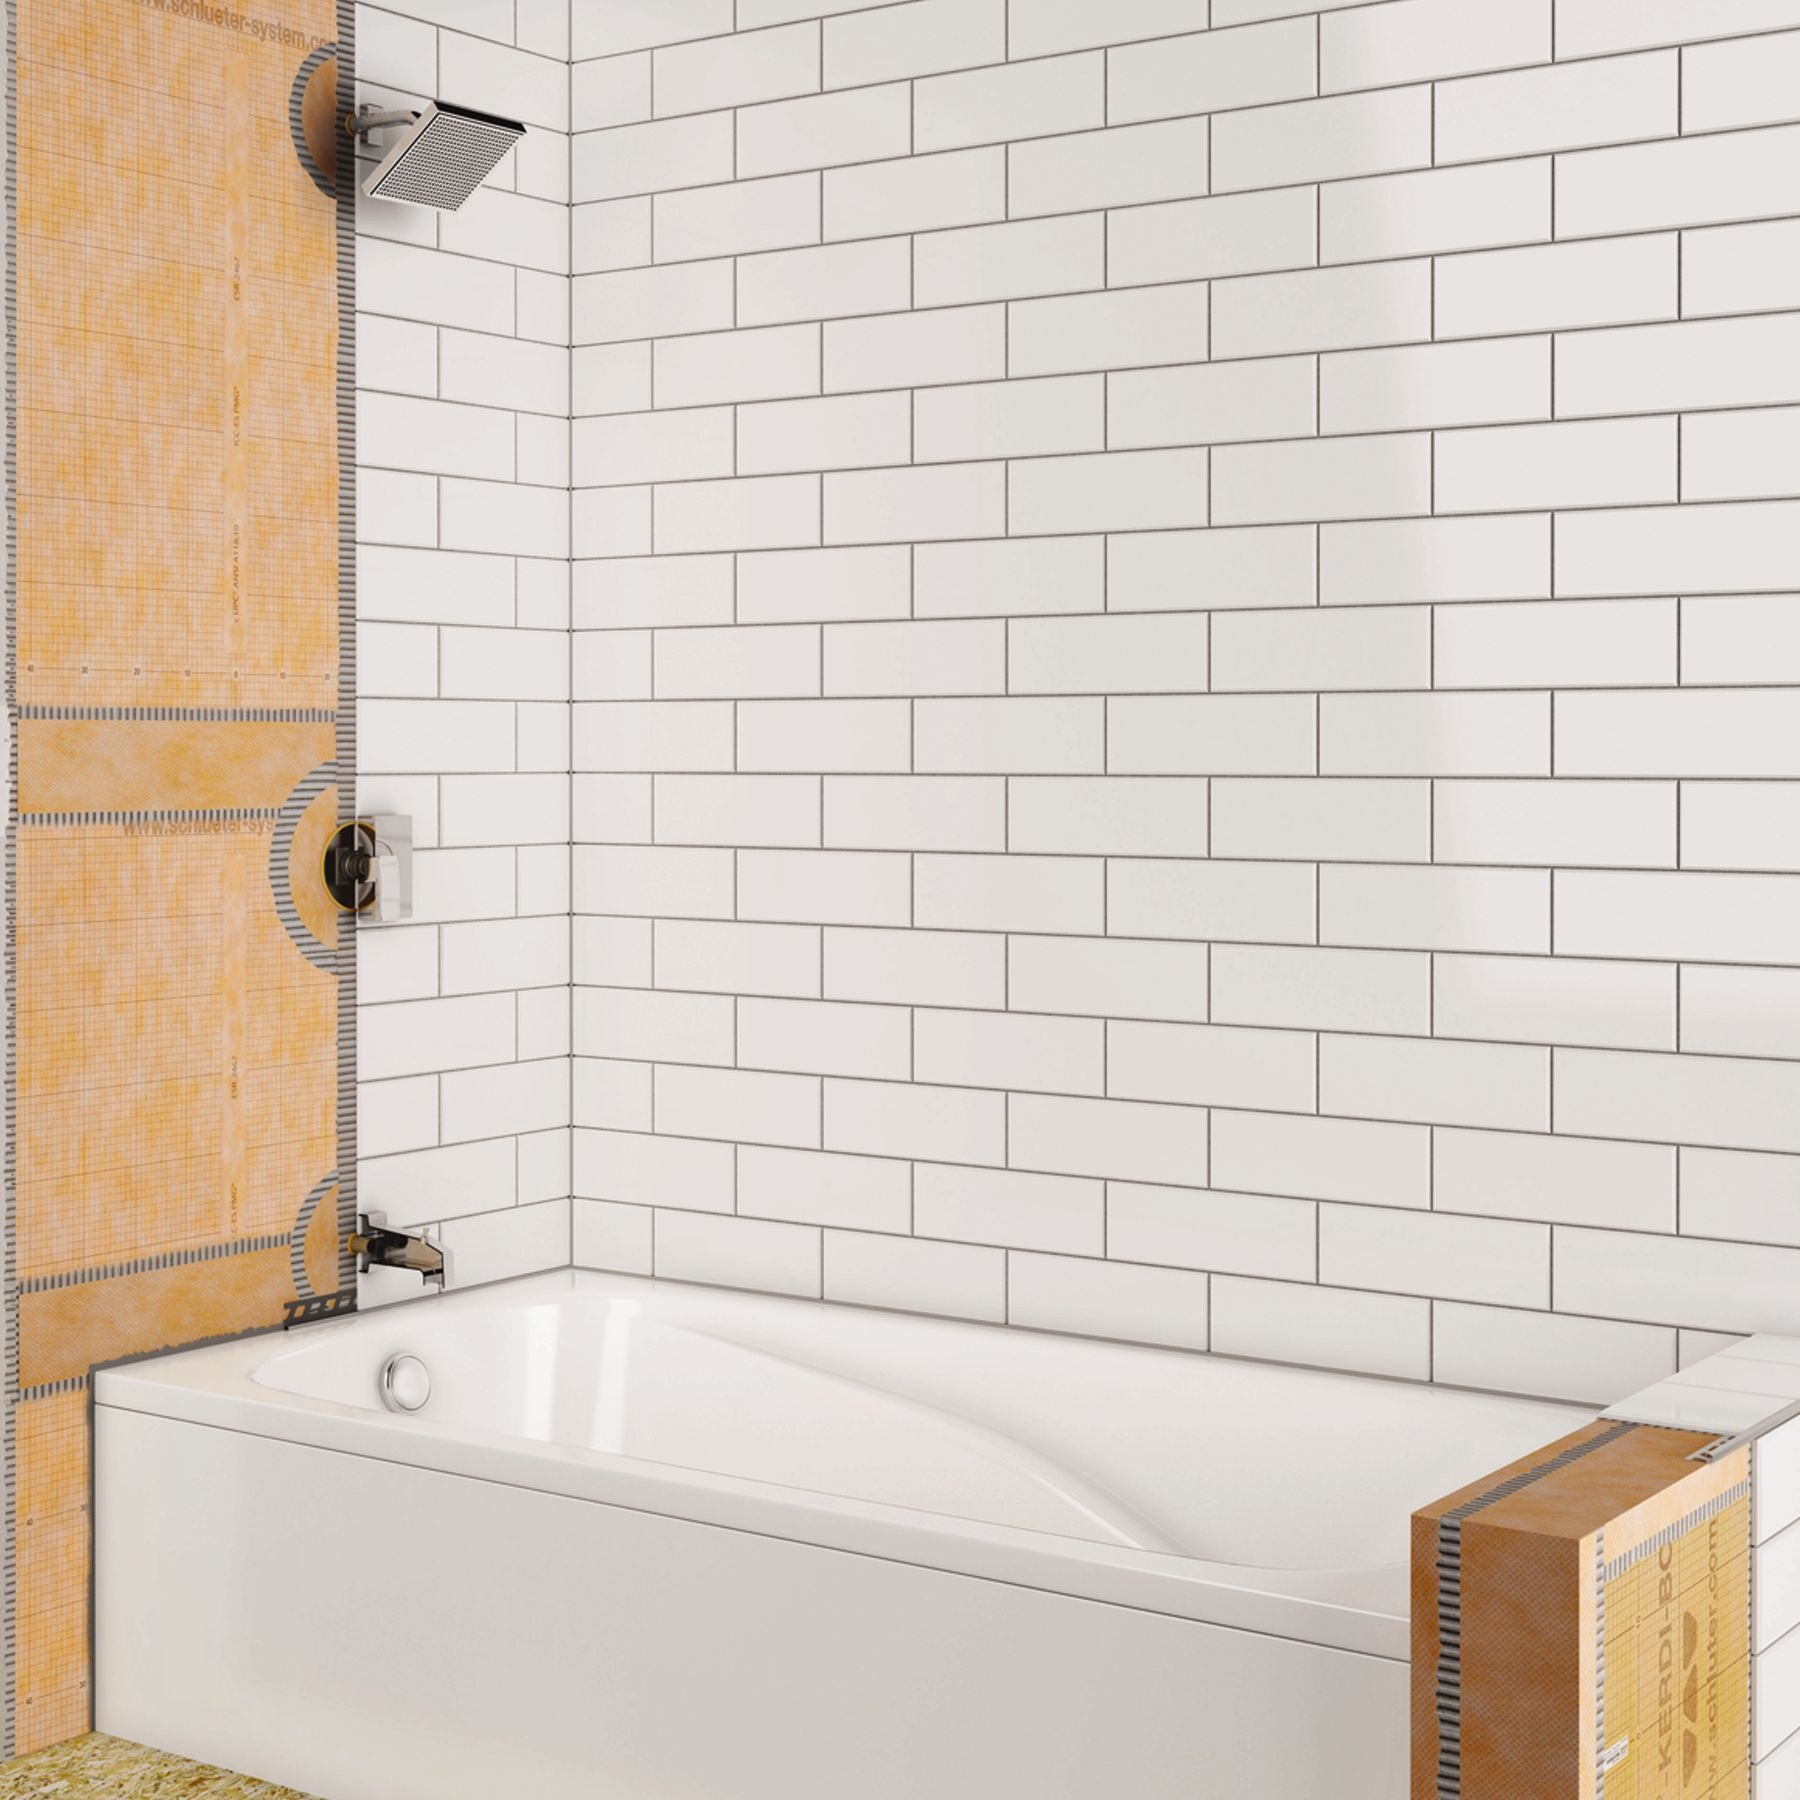 cheap bathtub diy walls everythingbeauty info stone